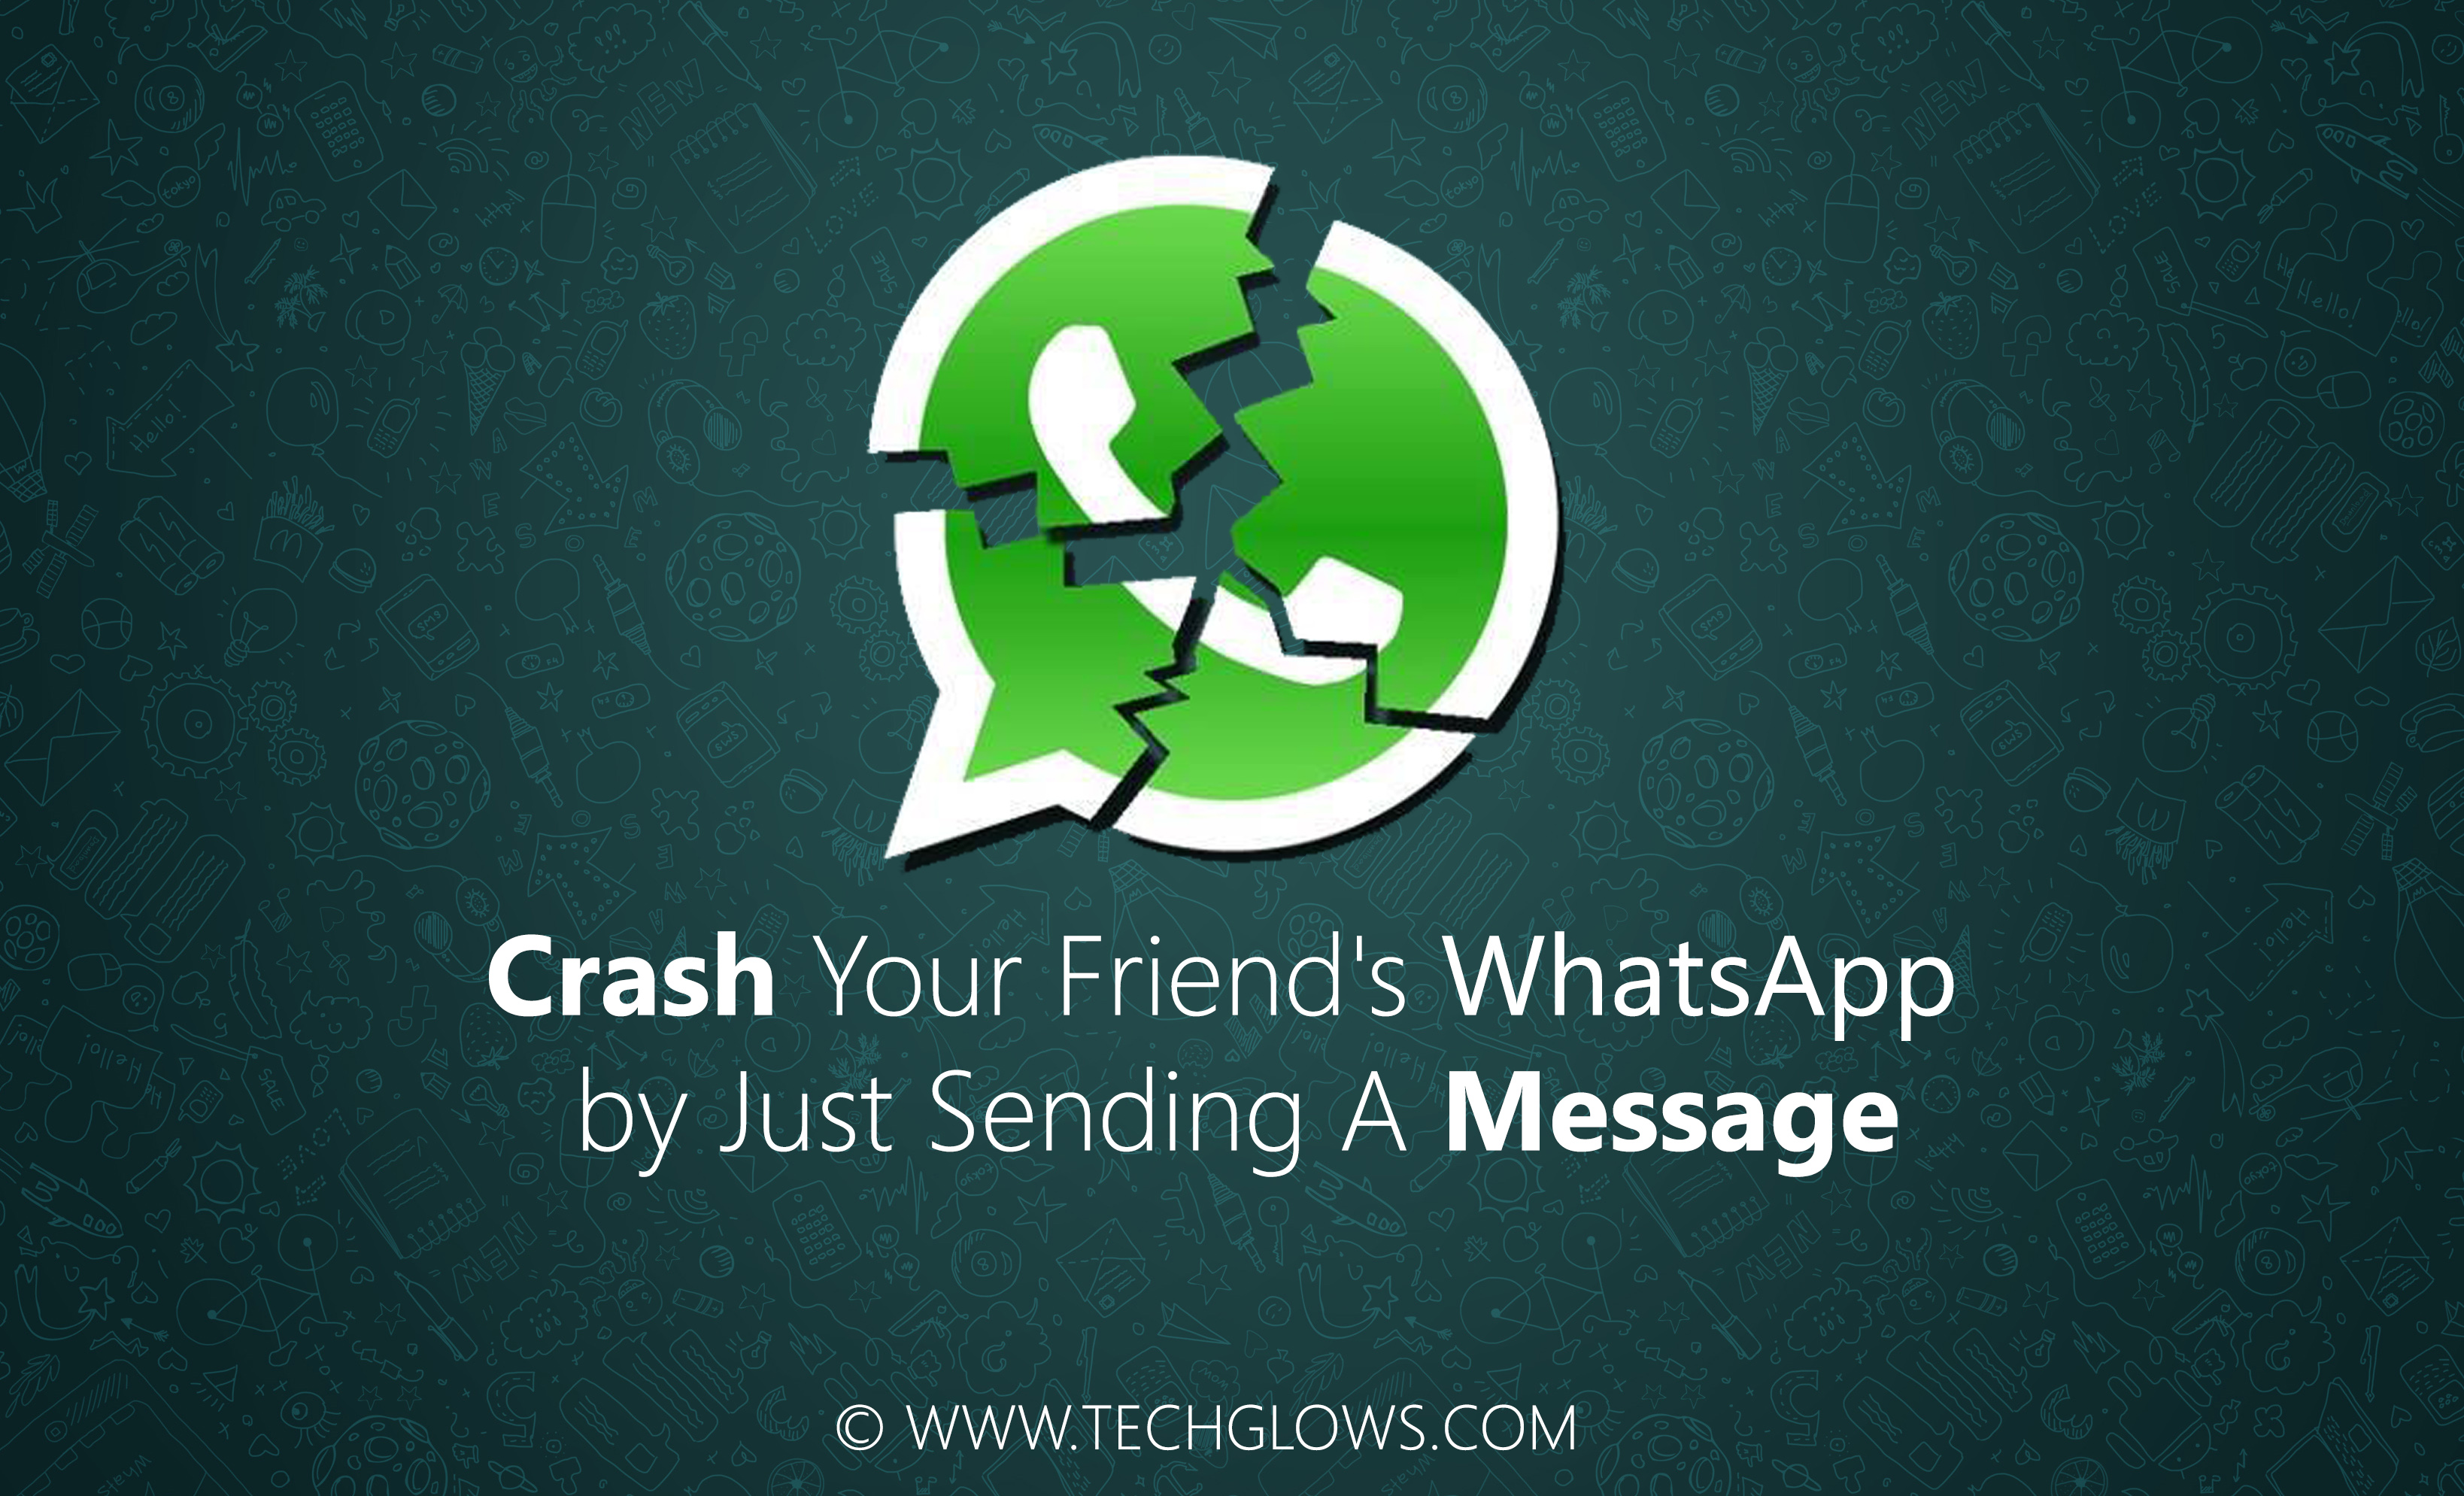 Crash Your Friend's WhatsApp by Just Sending A Message TECH GLOWS TRICK